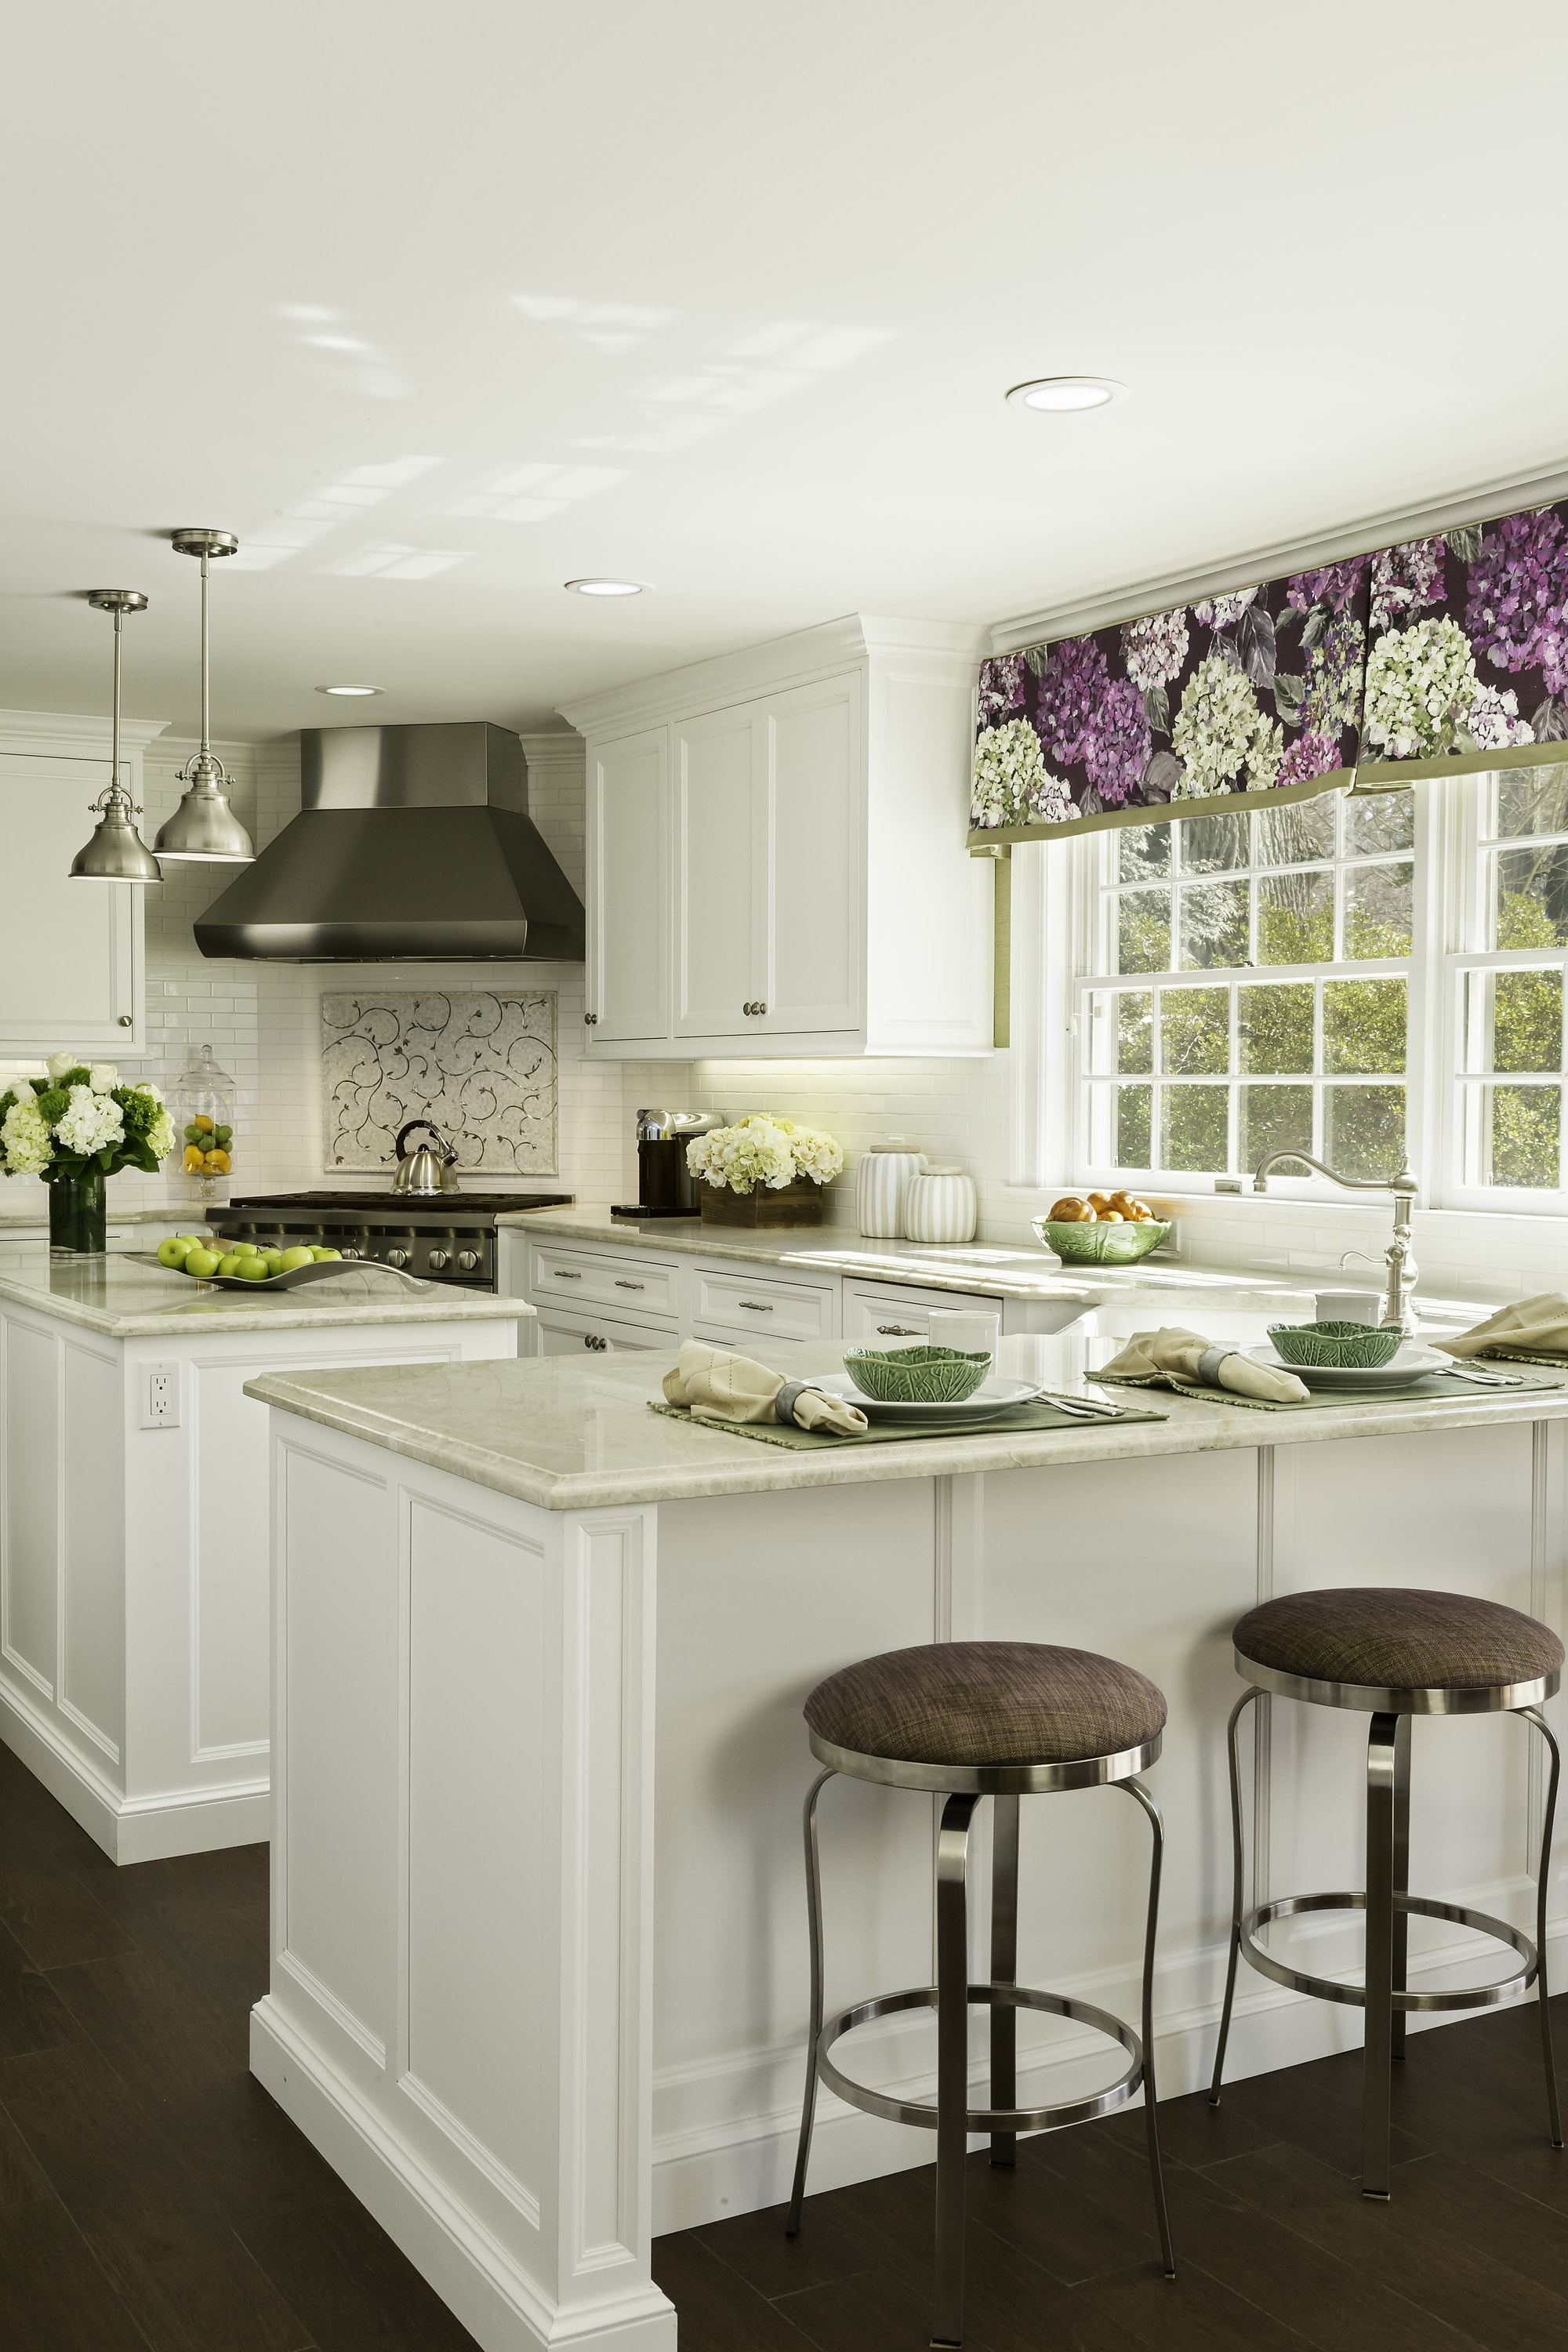 Transitional style kitchen with counter and two counter stools